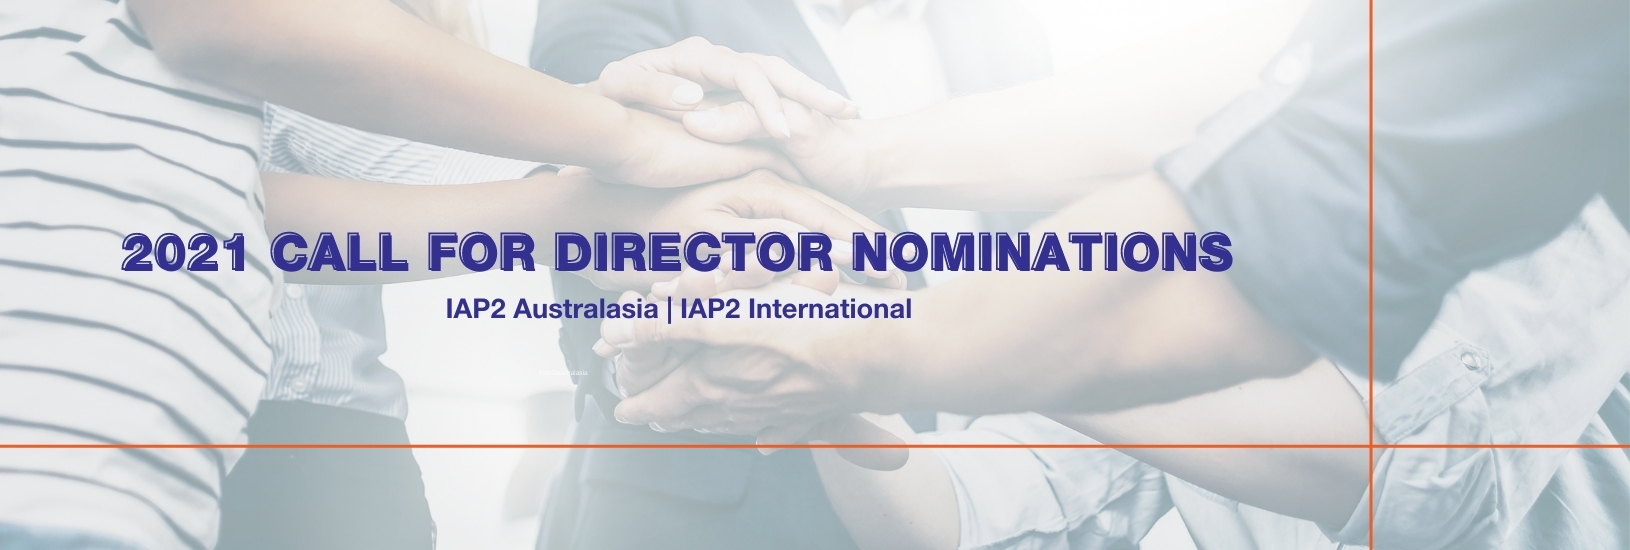 2021 Call for director nominations